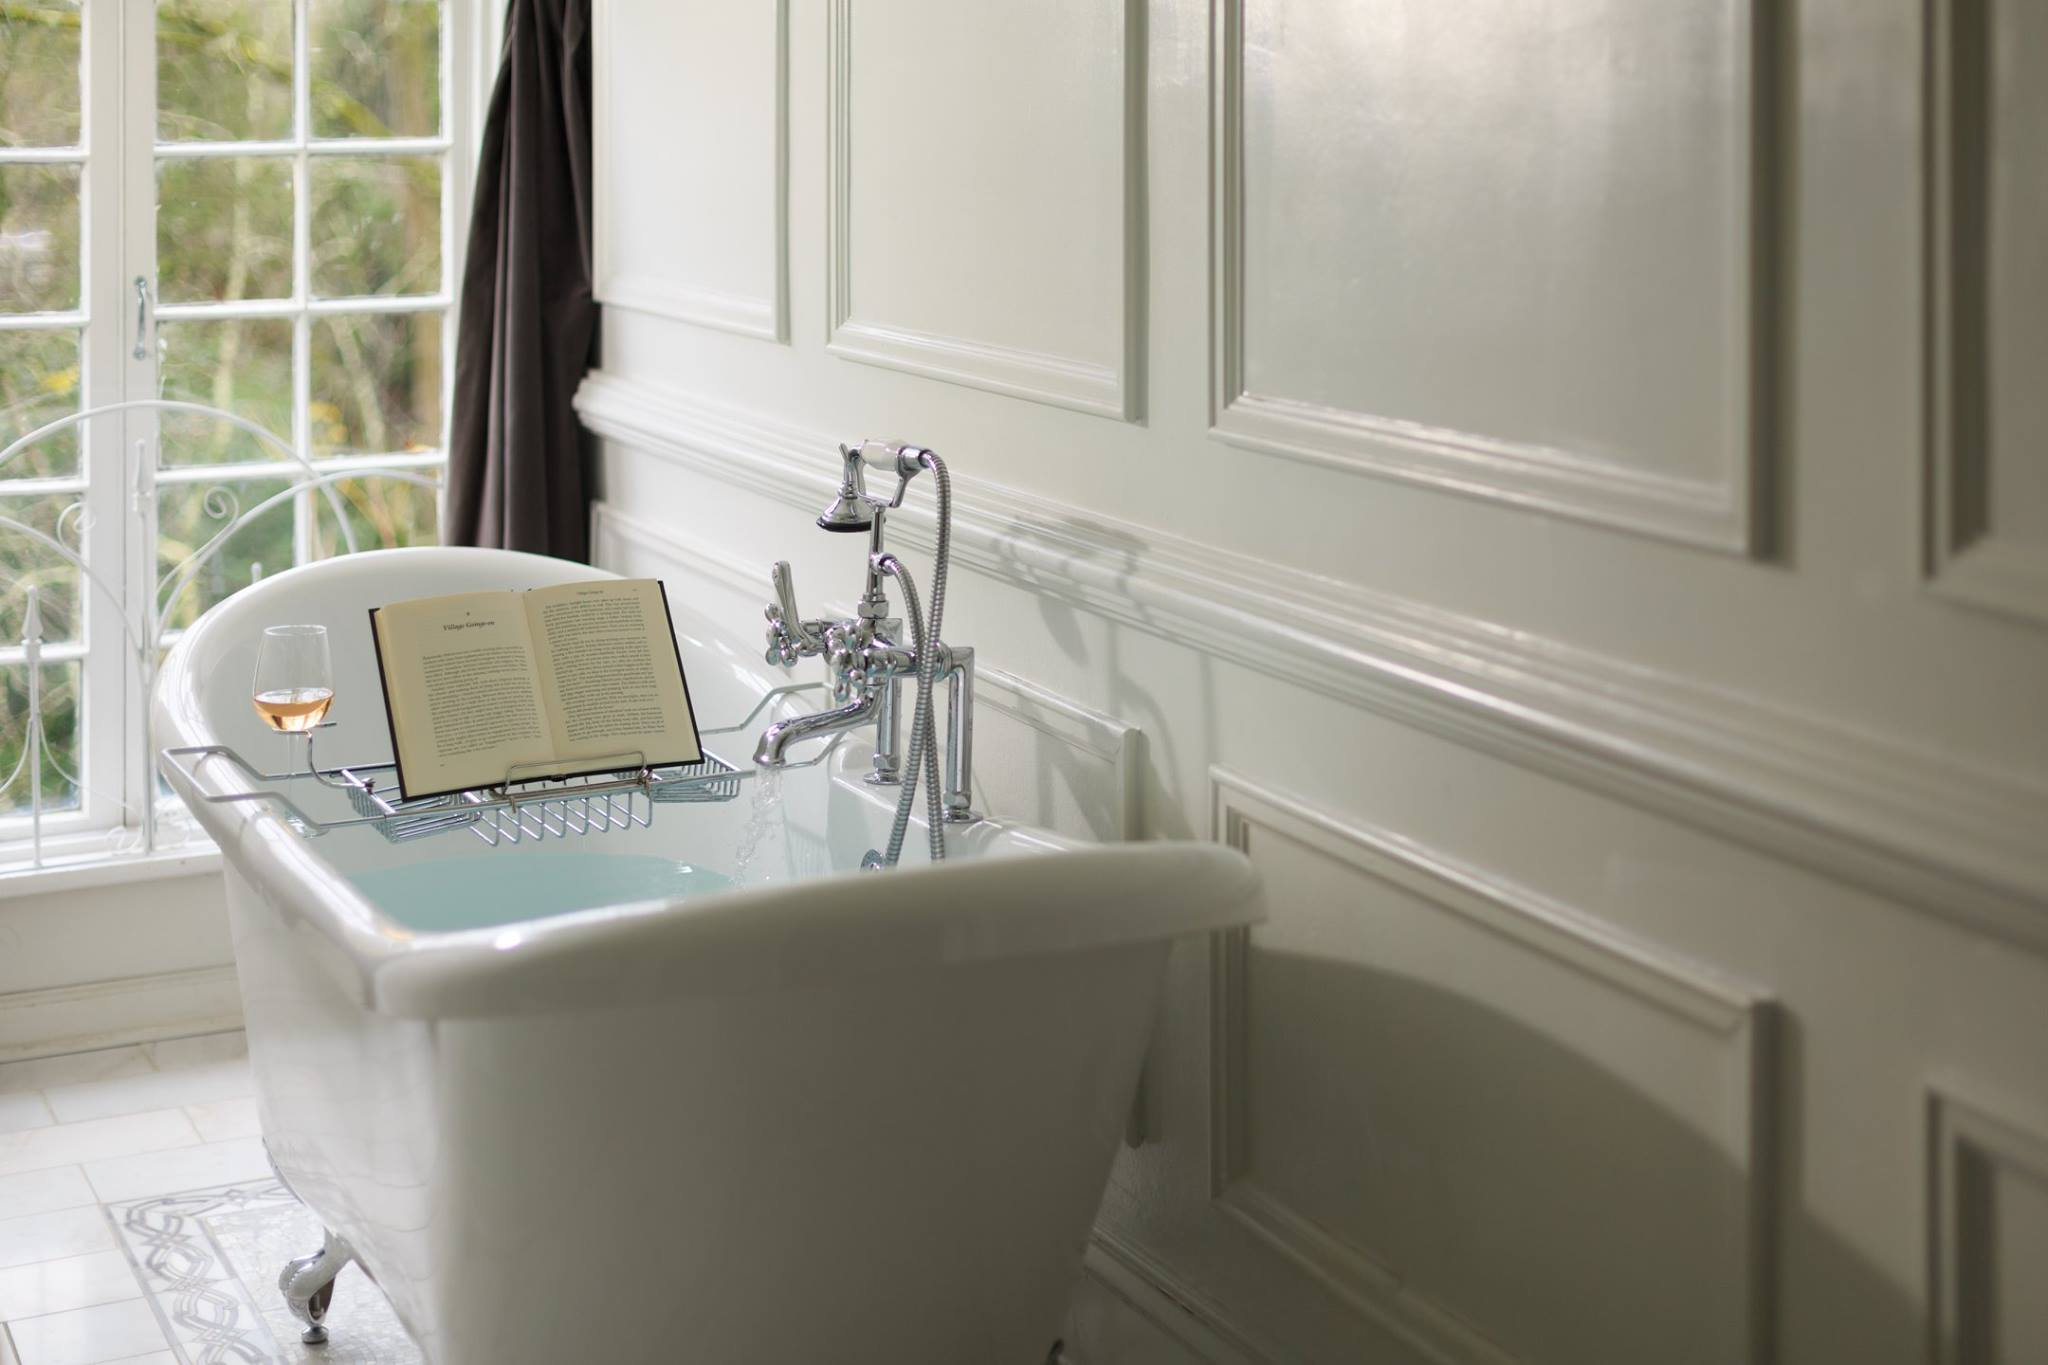 Soaking tub with book holder